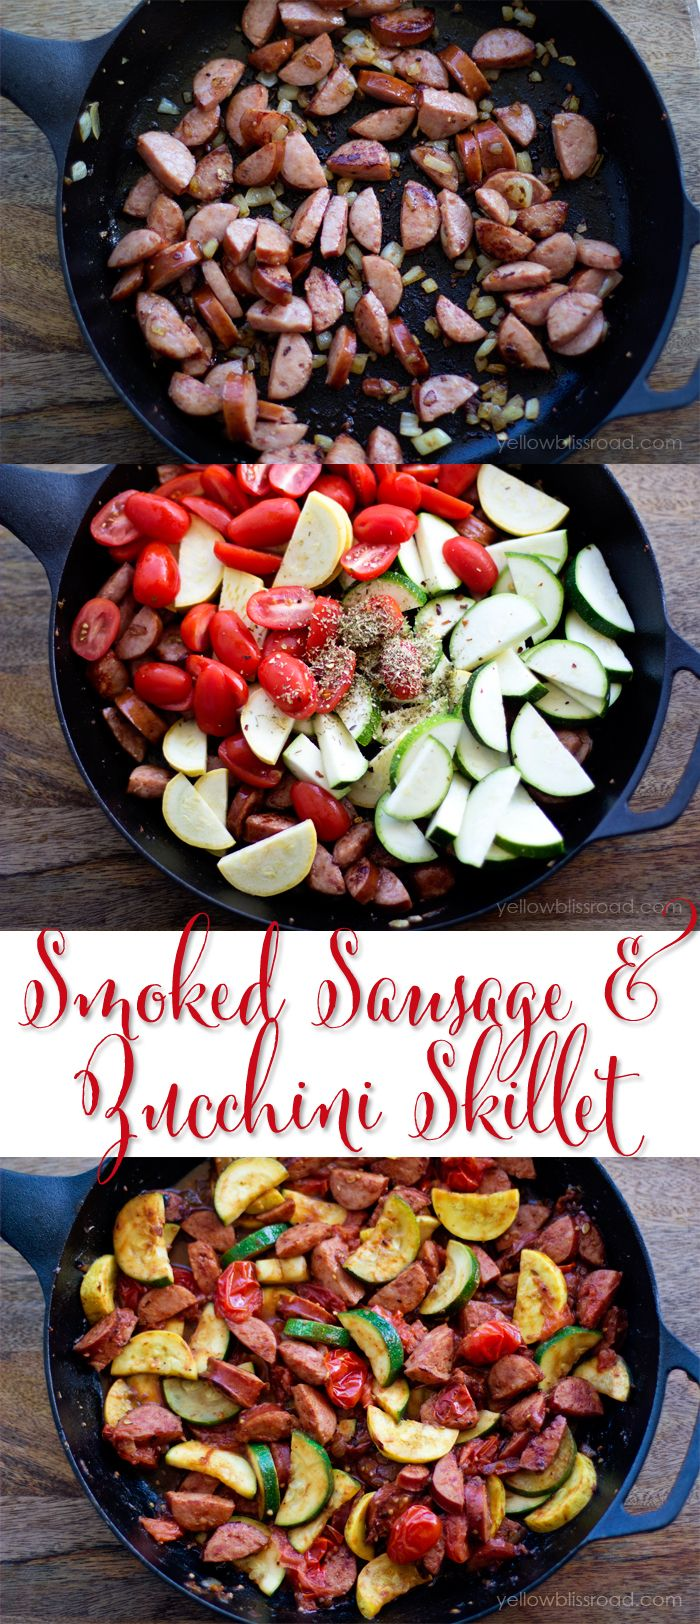 Amazing Smoked Sausage and Zucchini Skillet - This was so good!!!